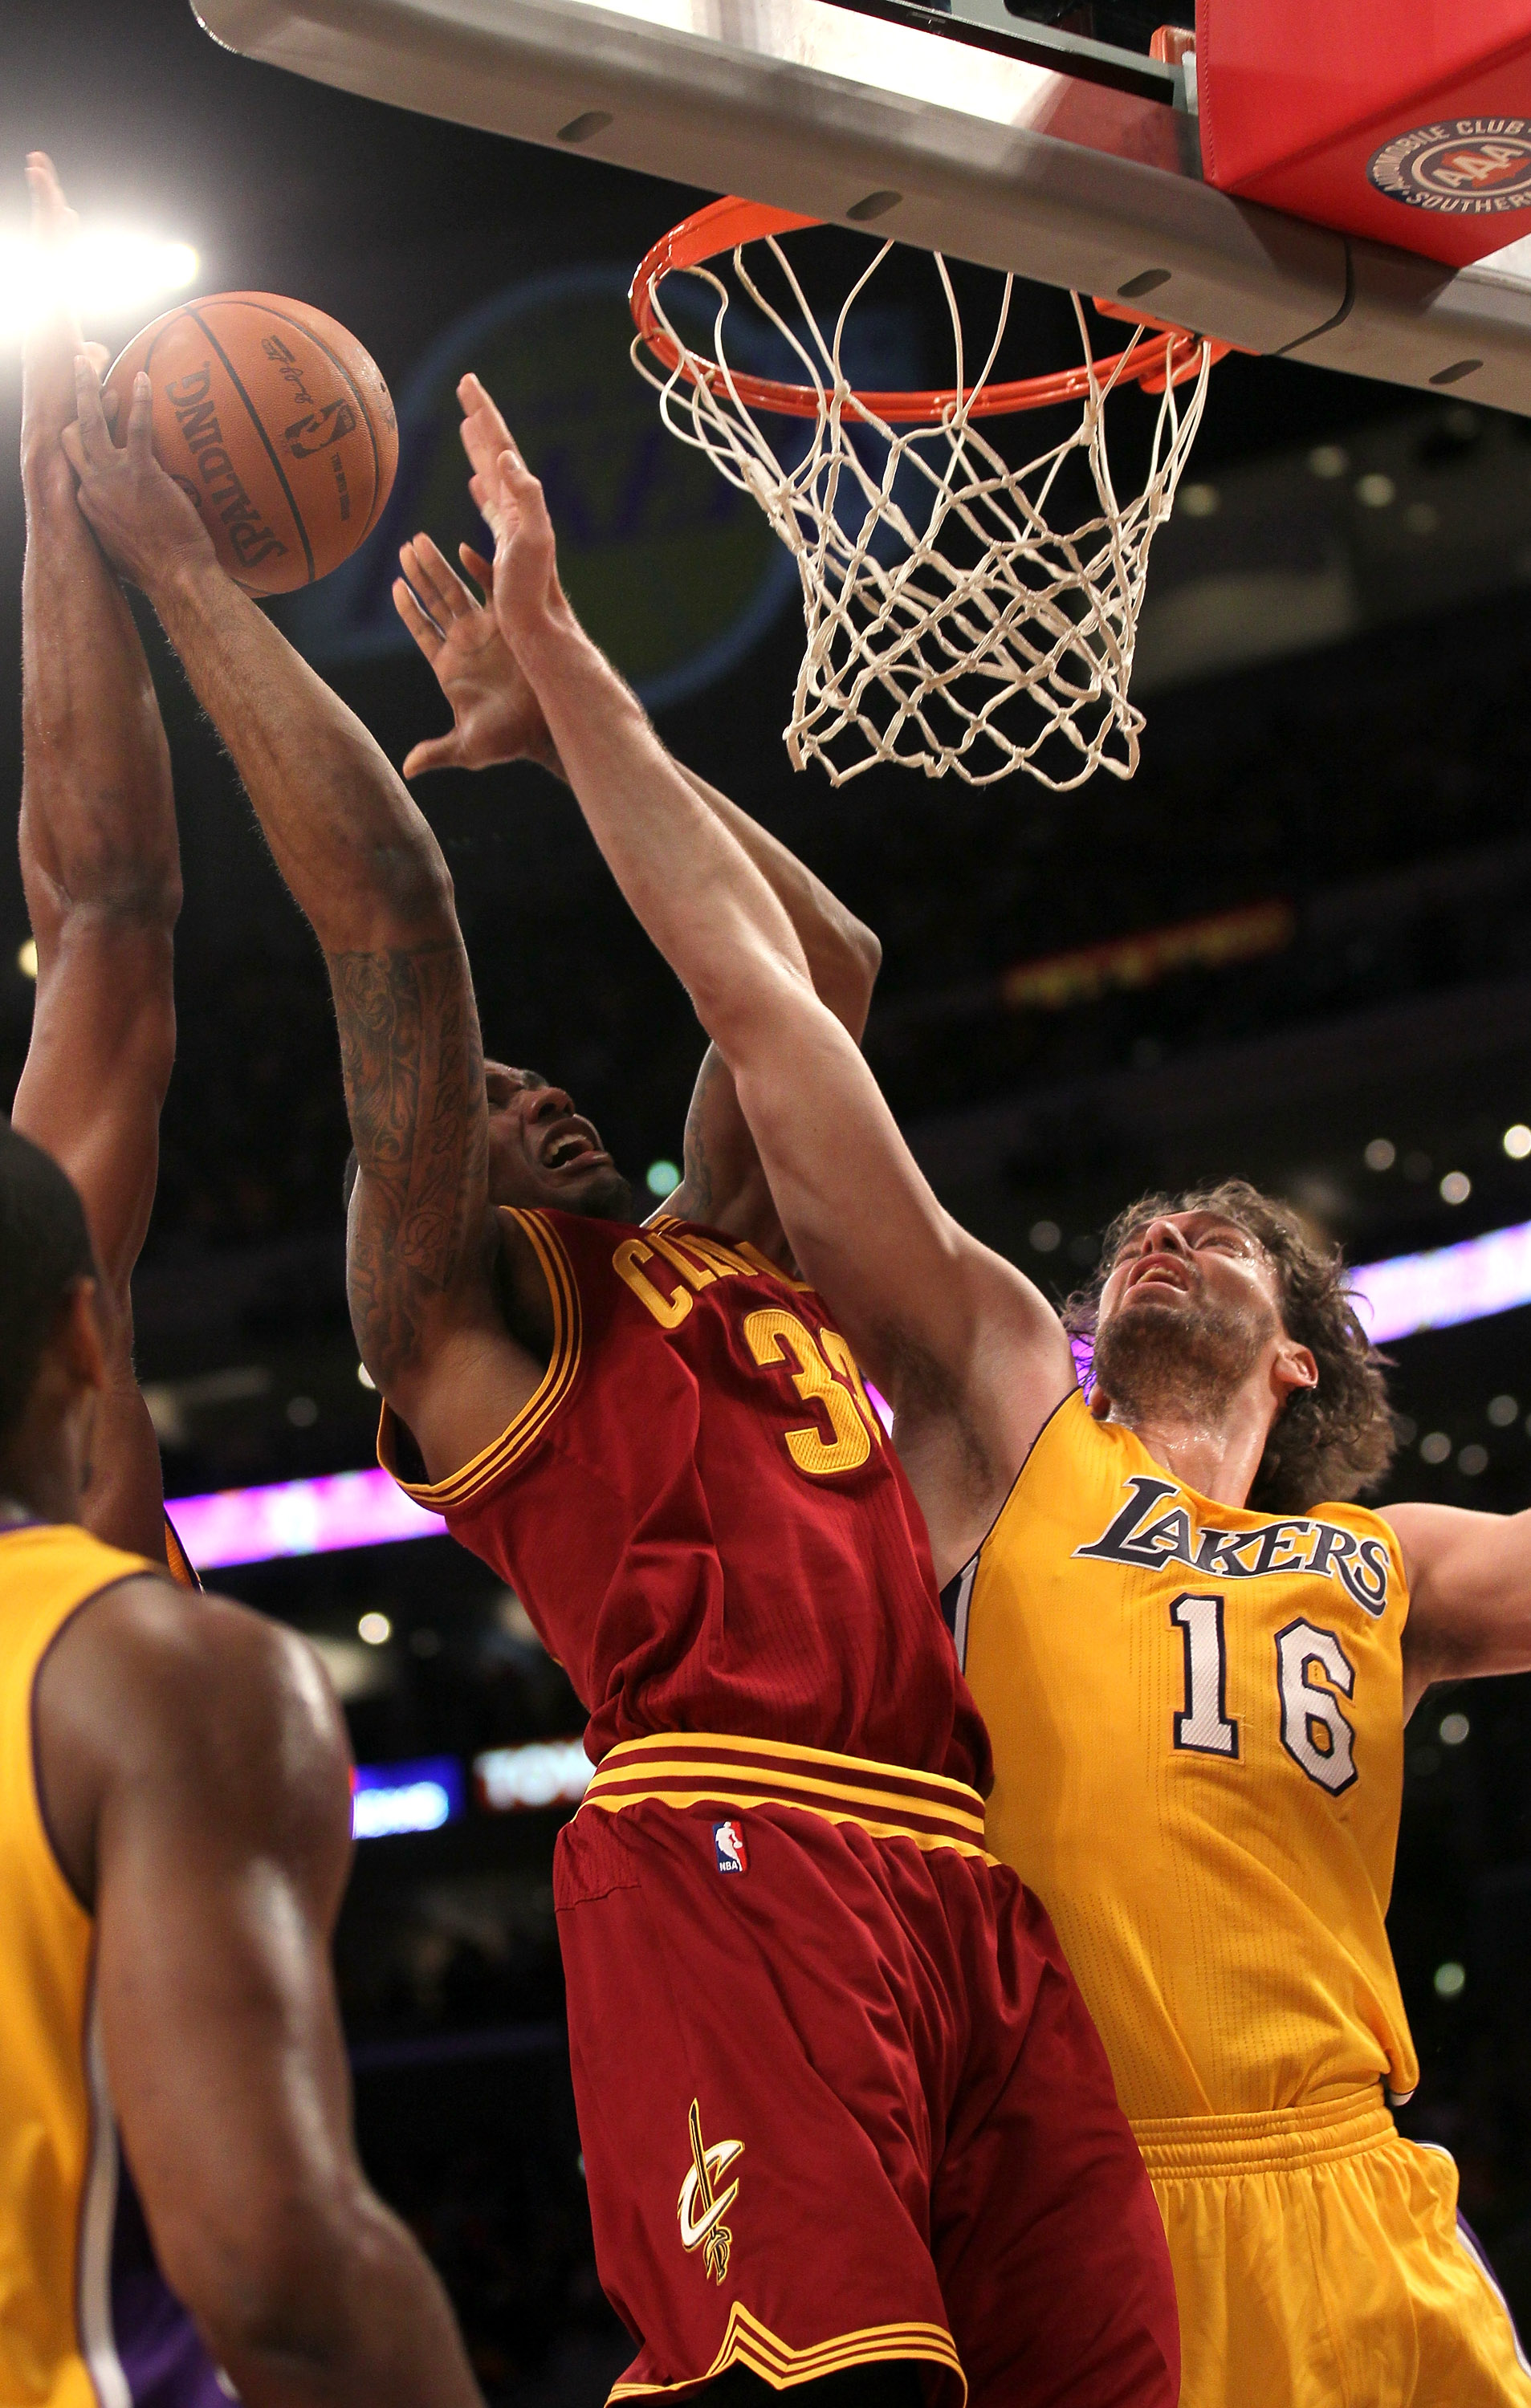 LOS ANGELES, CA - JANUARY 11:  Alonzo Gee #33 of  the Cleveland Cavaliers goes up to shoot against Pau Gasol #16 of the Los Angeles Lakers at Staples Center on January 11, 2011 in Los Angeles, California.  The Lakers won 112-57.  NOTE TO USER: User expres